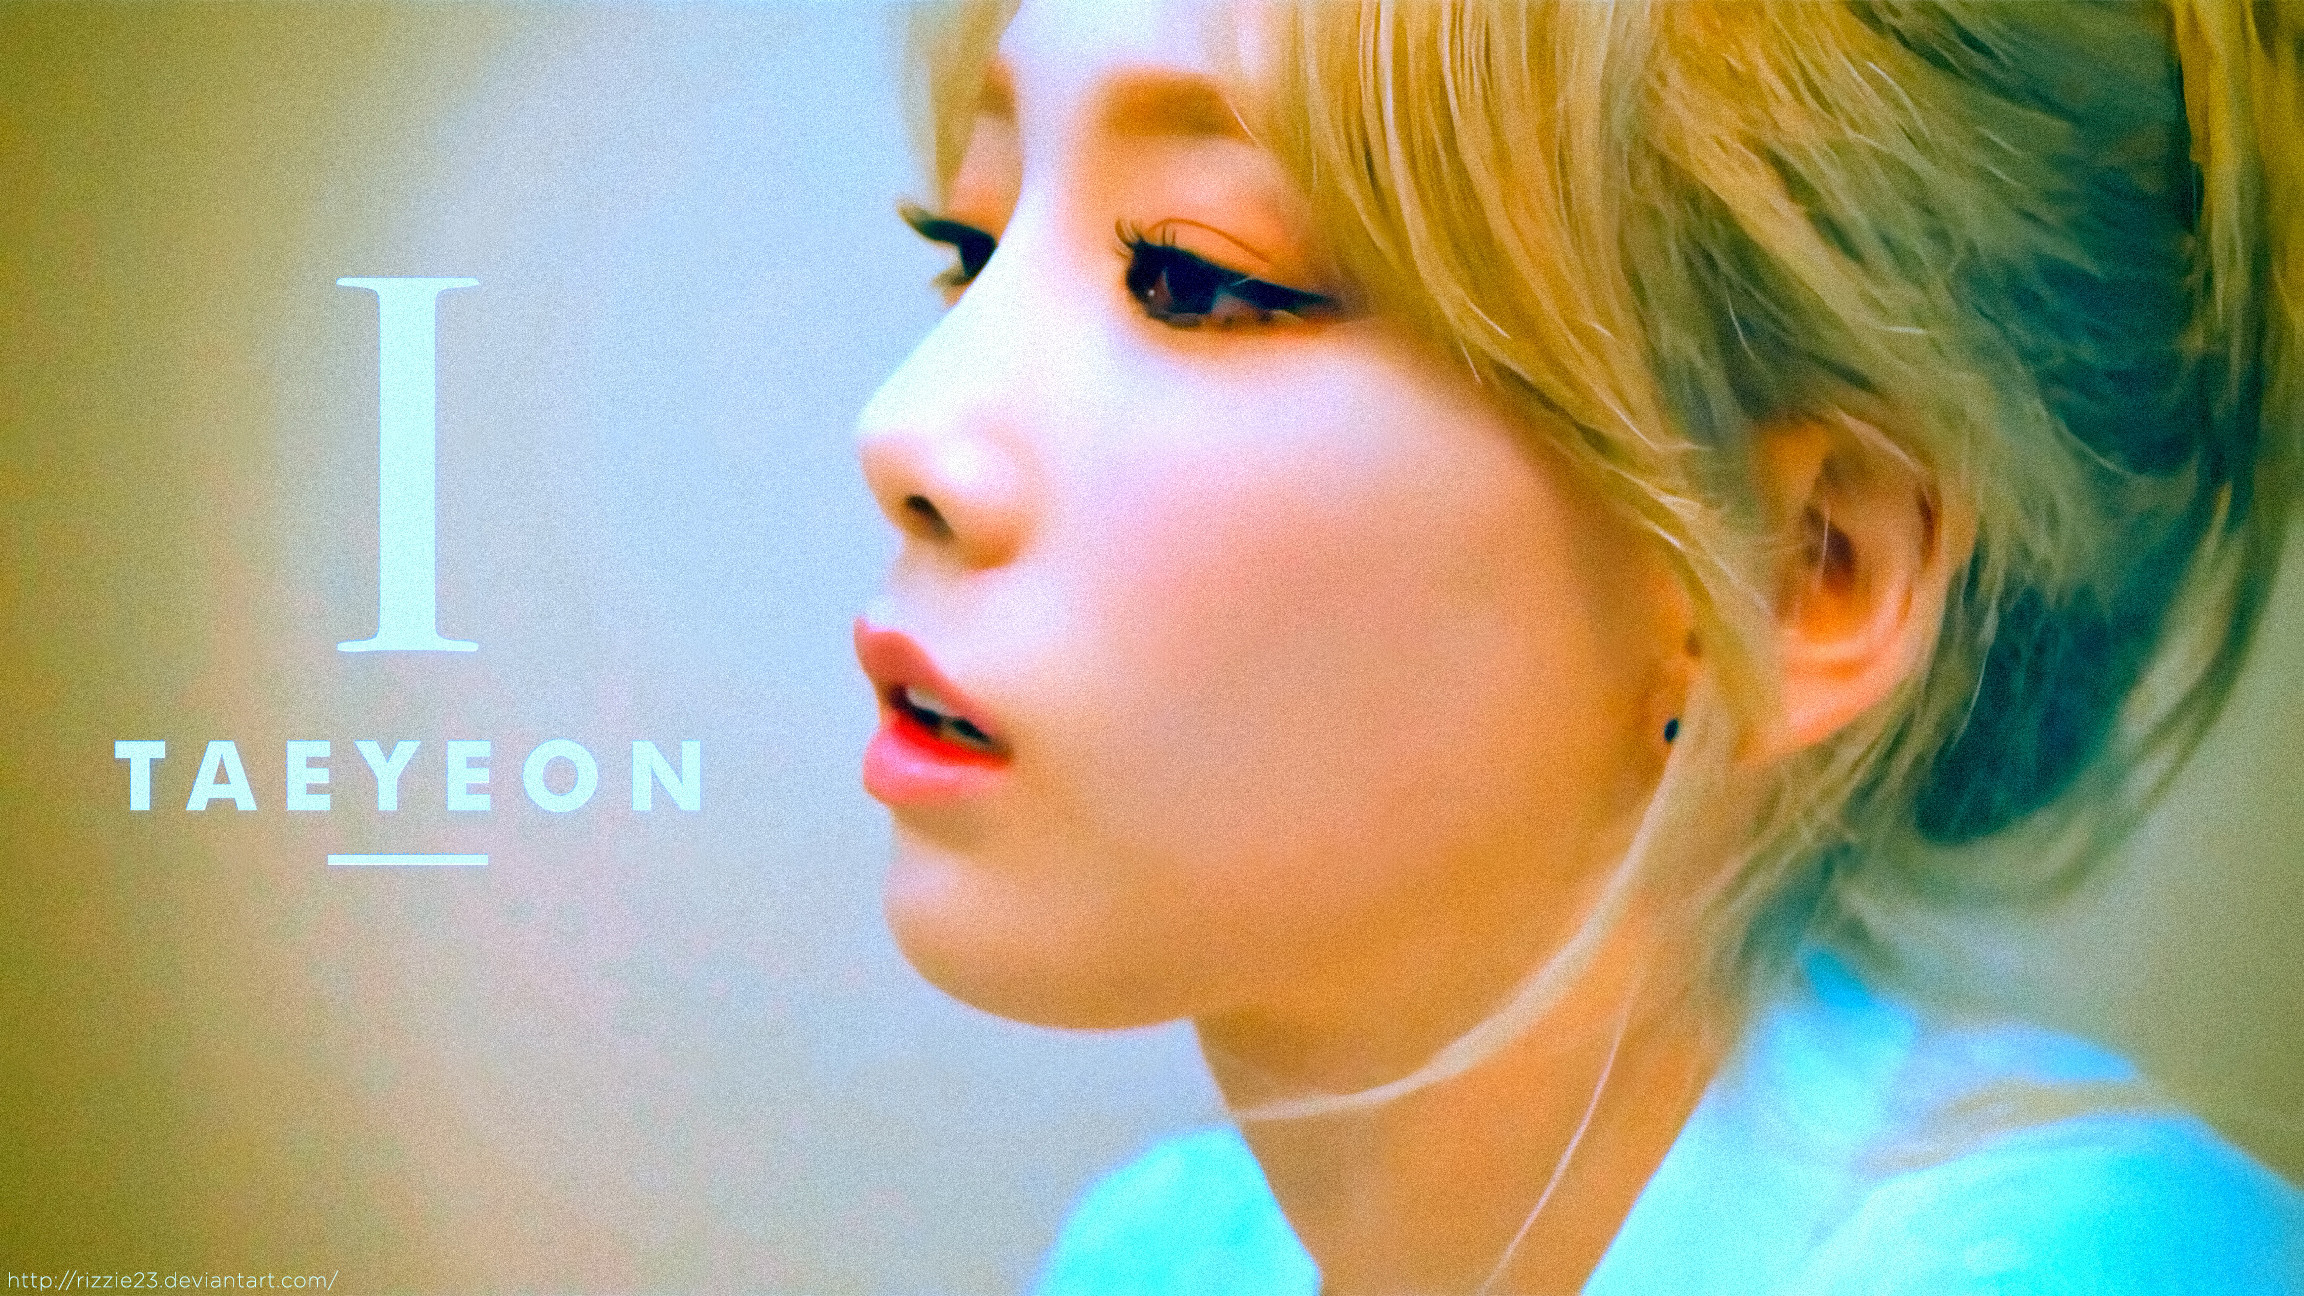 Res: 2304x1296, ... Taeyeon I HD Desktop Wallpaper 1 by Rizzie23